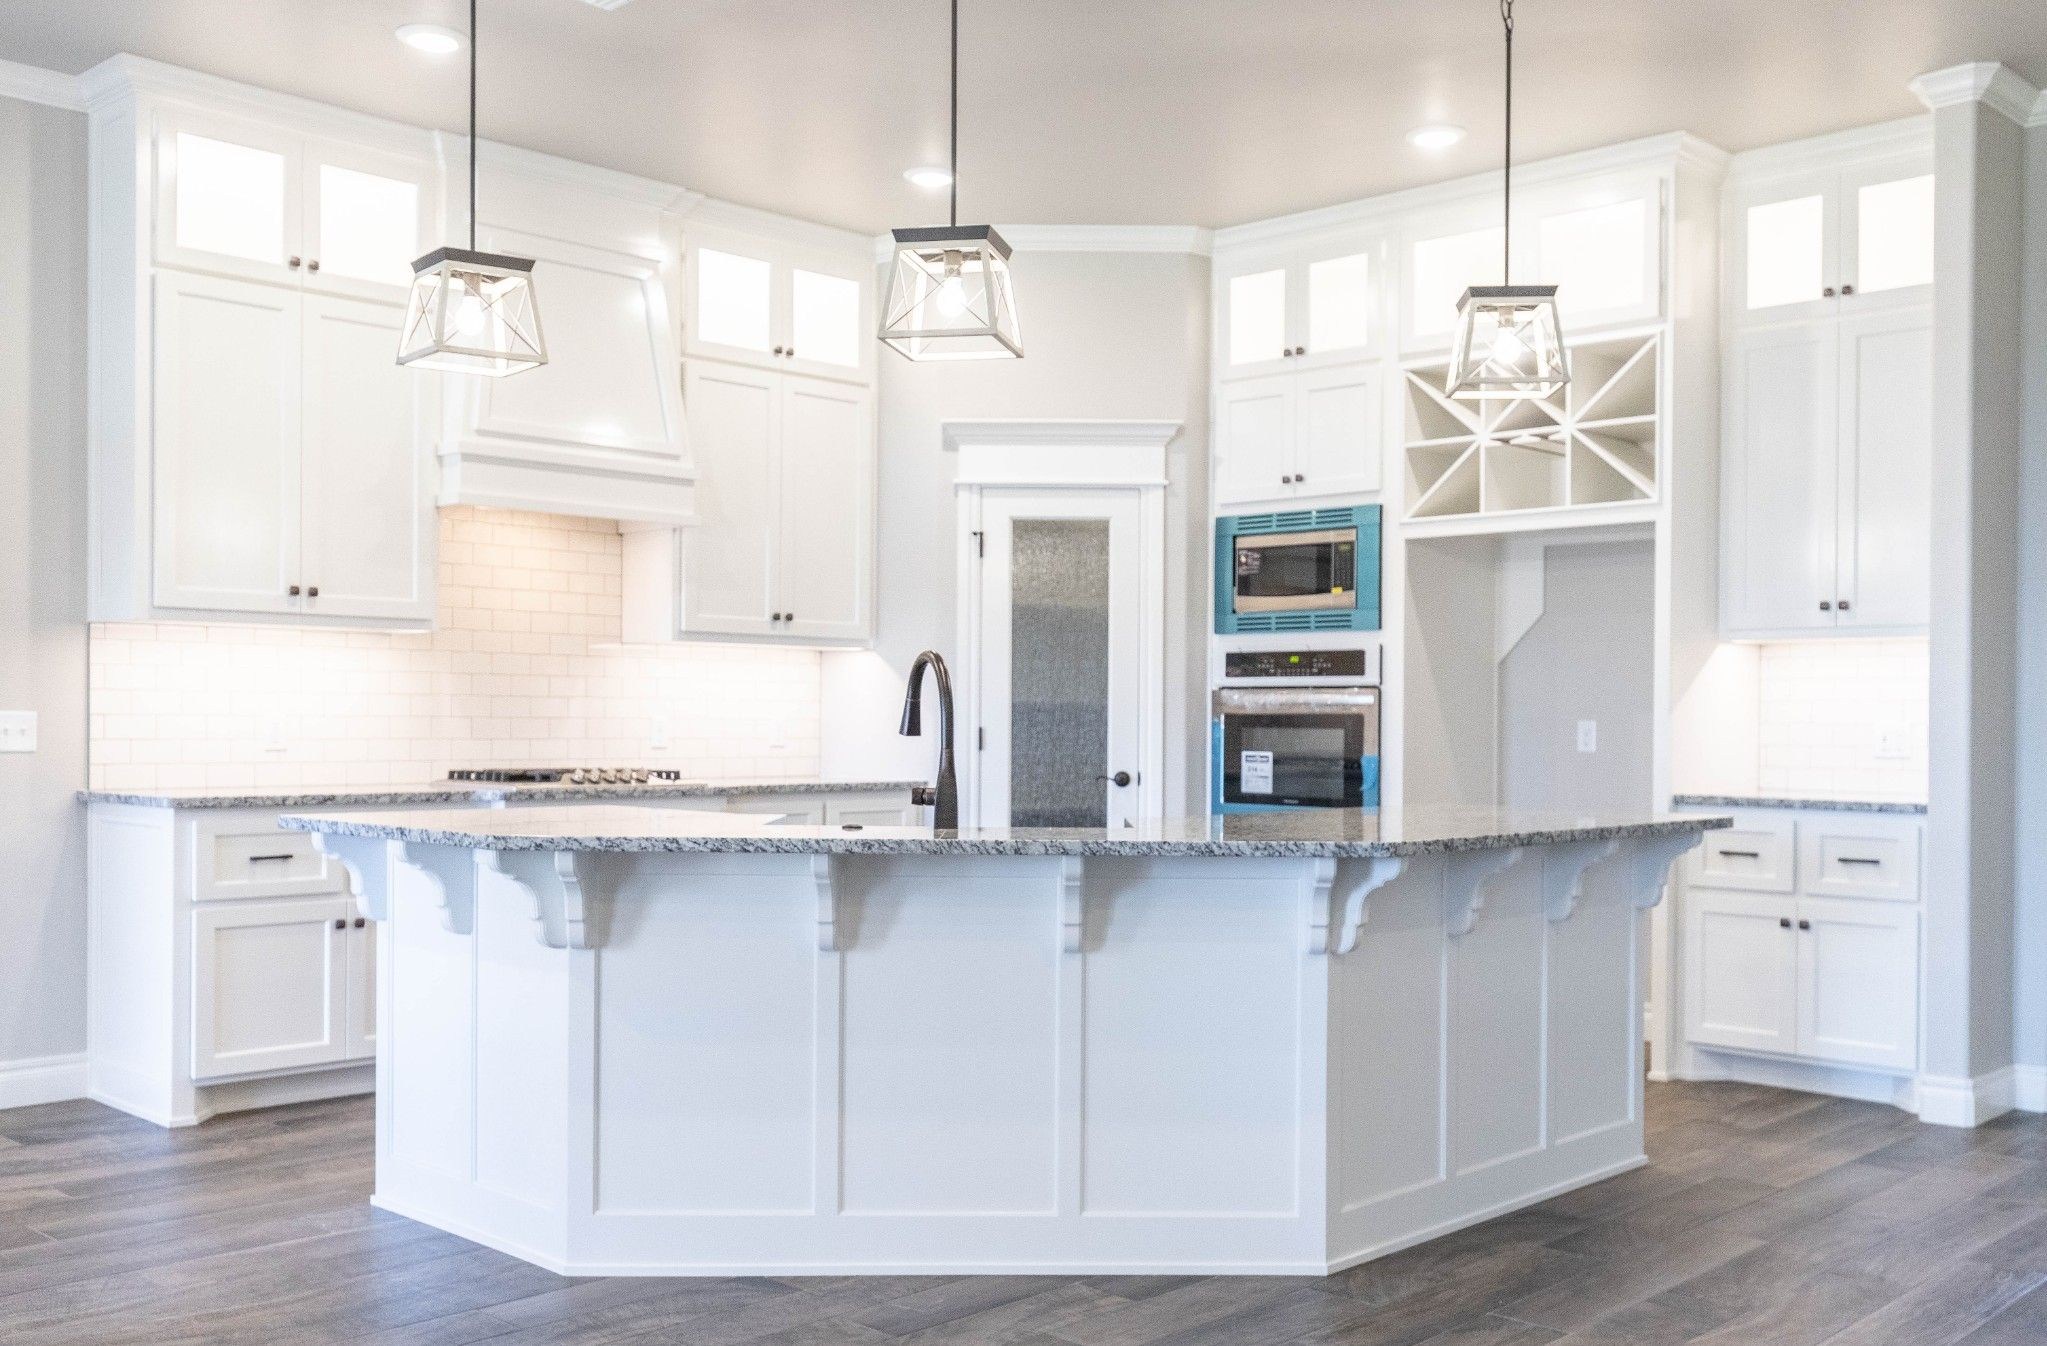 Kitchen featured in the Mallory By Homes By Taber in Oklahoma City, OK